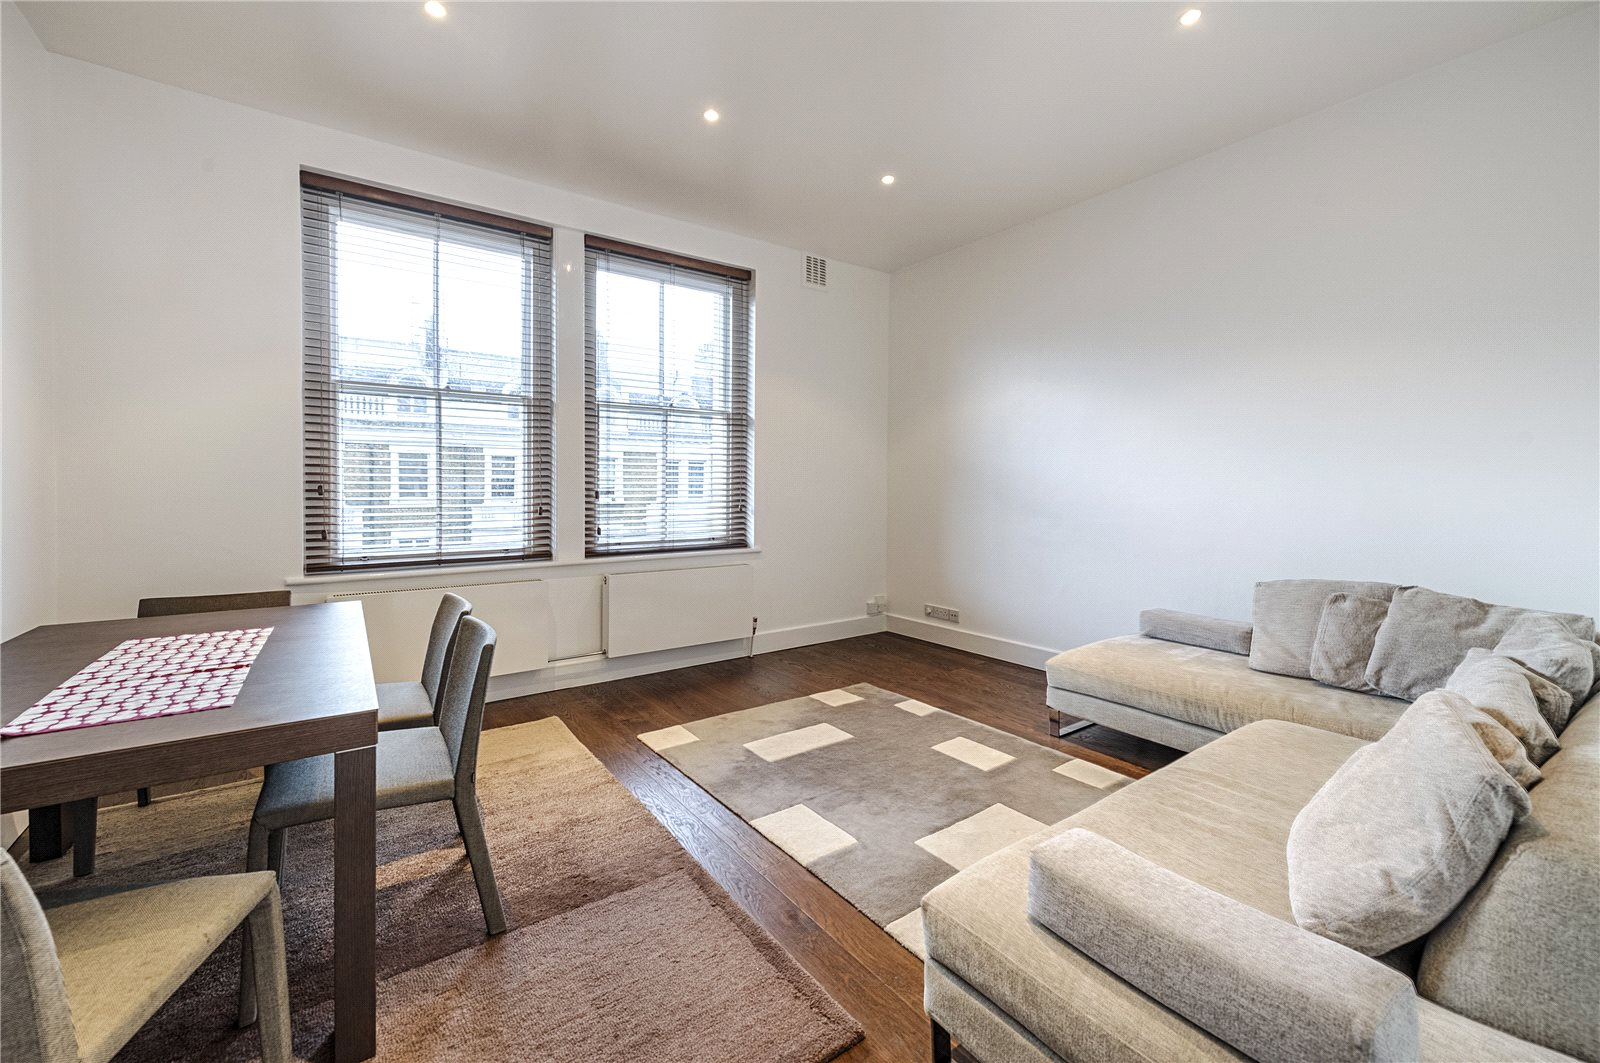 Appartementen voor Verkoop een t Penywern Road, Earls Court, London, SW5 Earls Court, London, Engeland